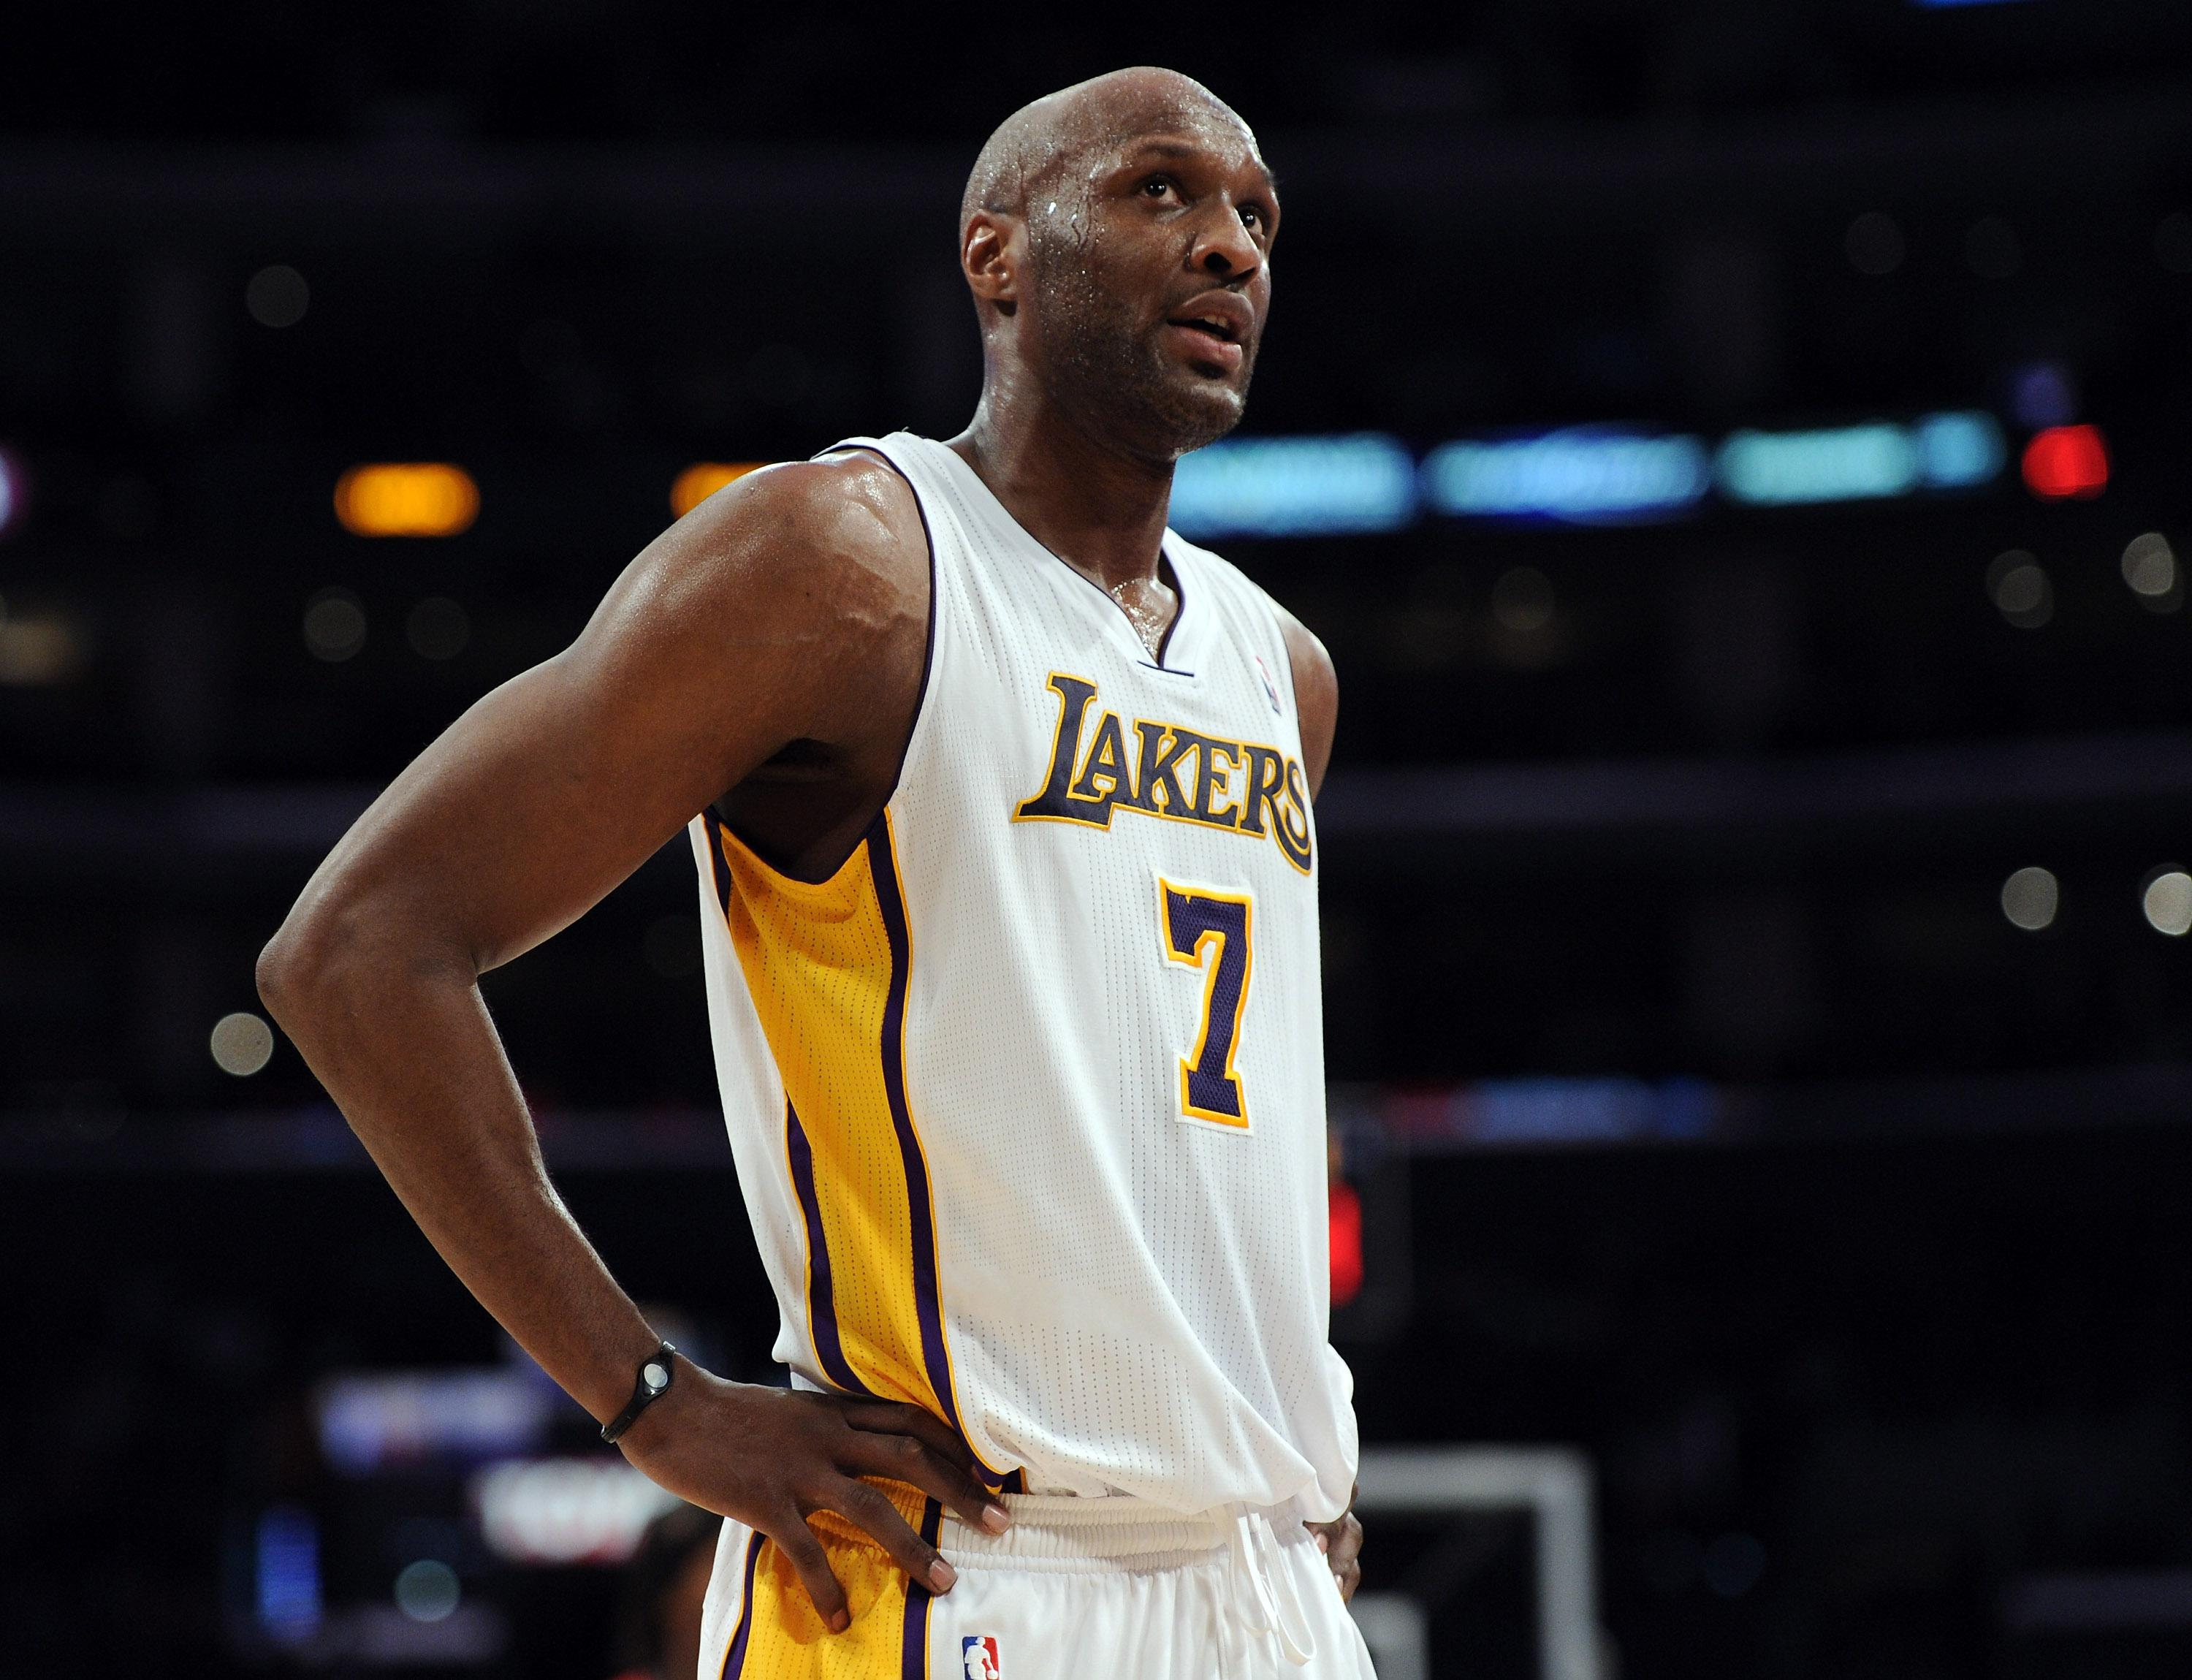 A Look At Lamar Odom's Financial History